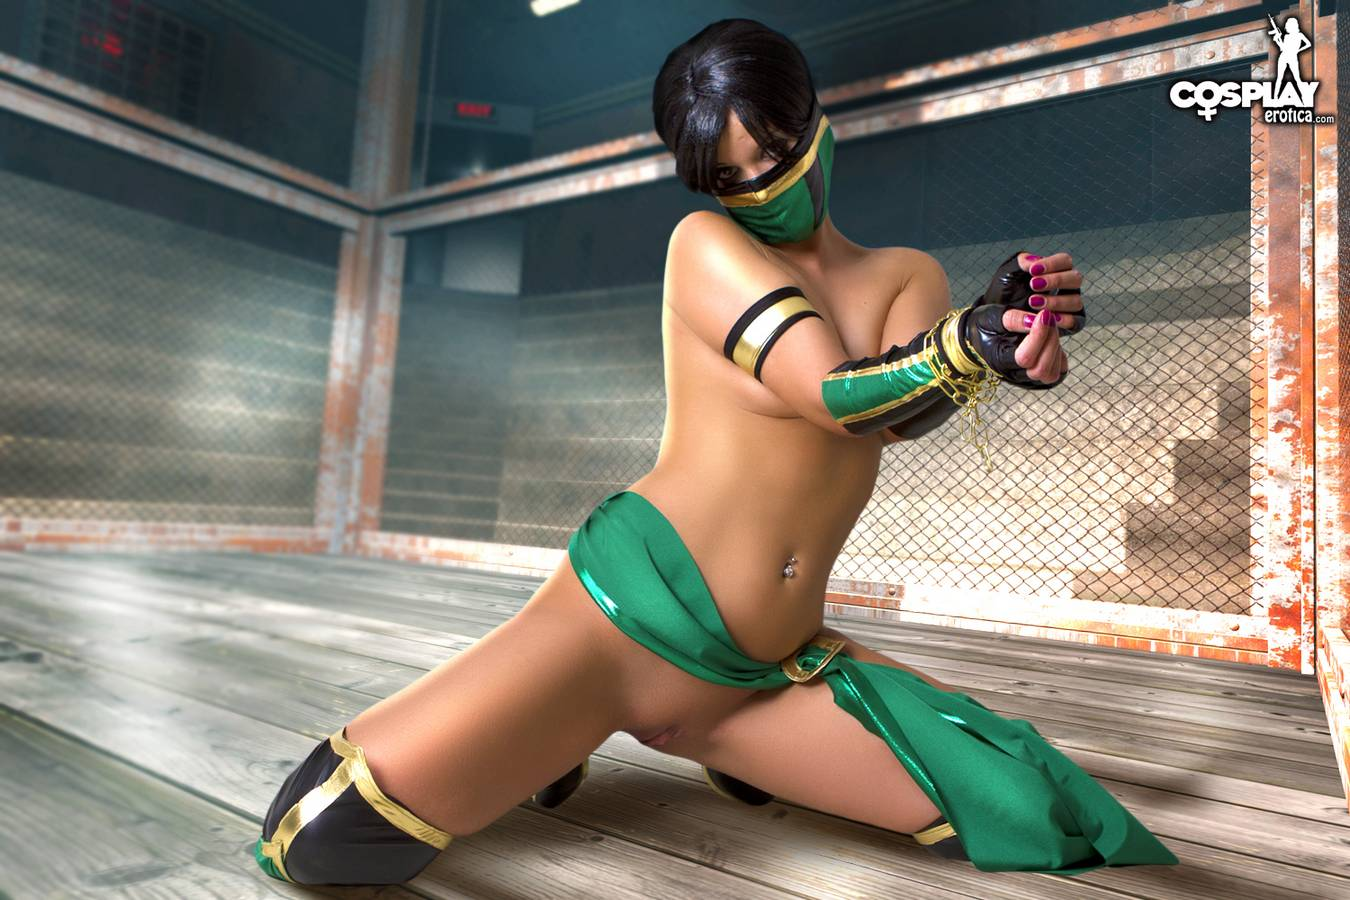 Mortal Kombat Sexy Girls